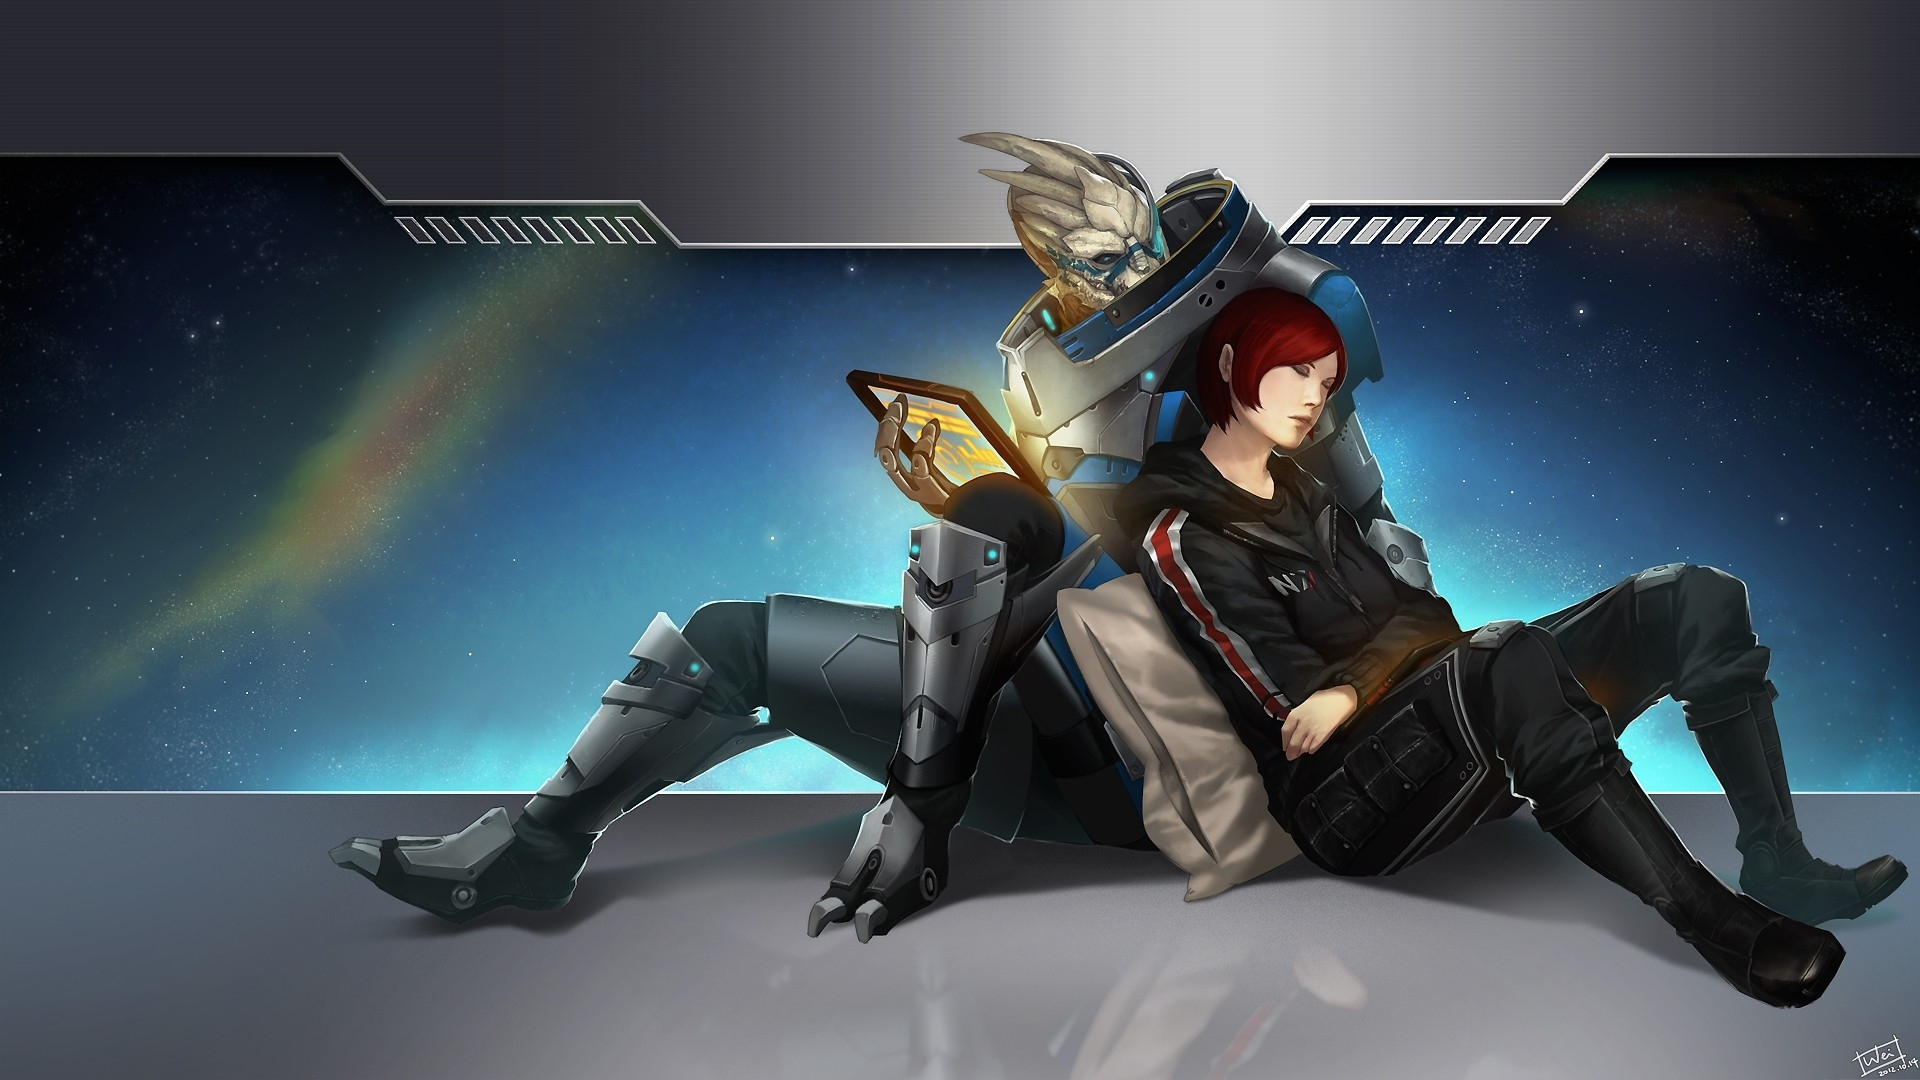 video games, mass effect, n7, garrus vakarian, femshep, commander